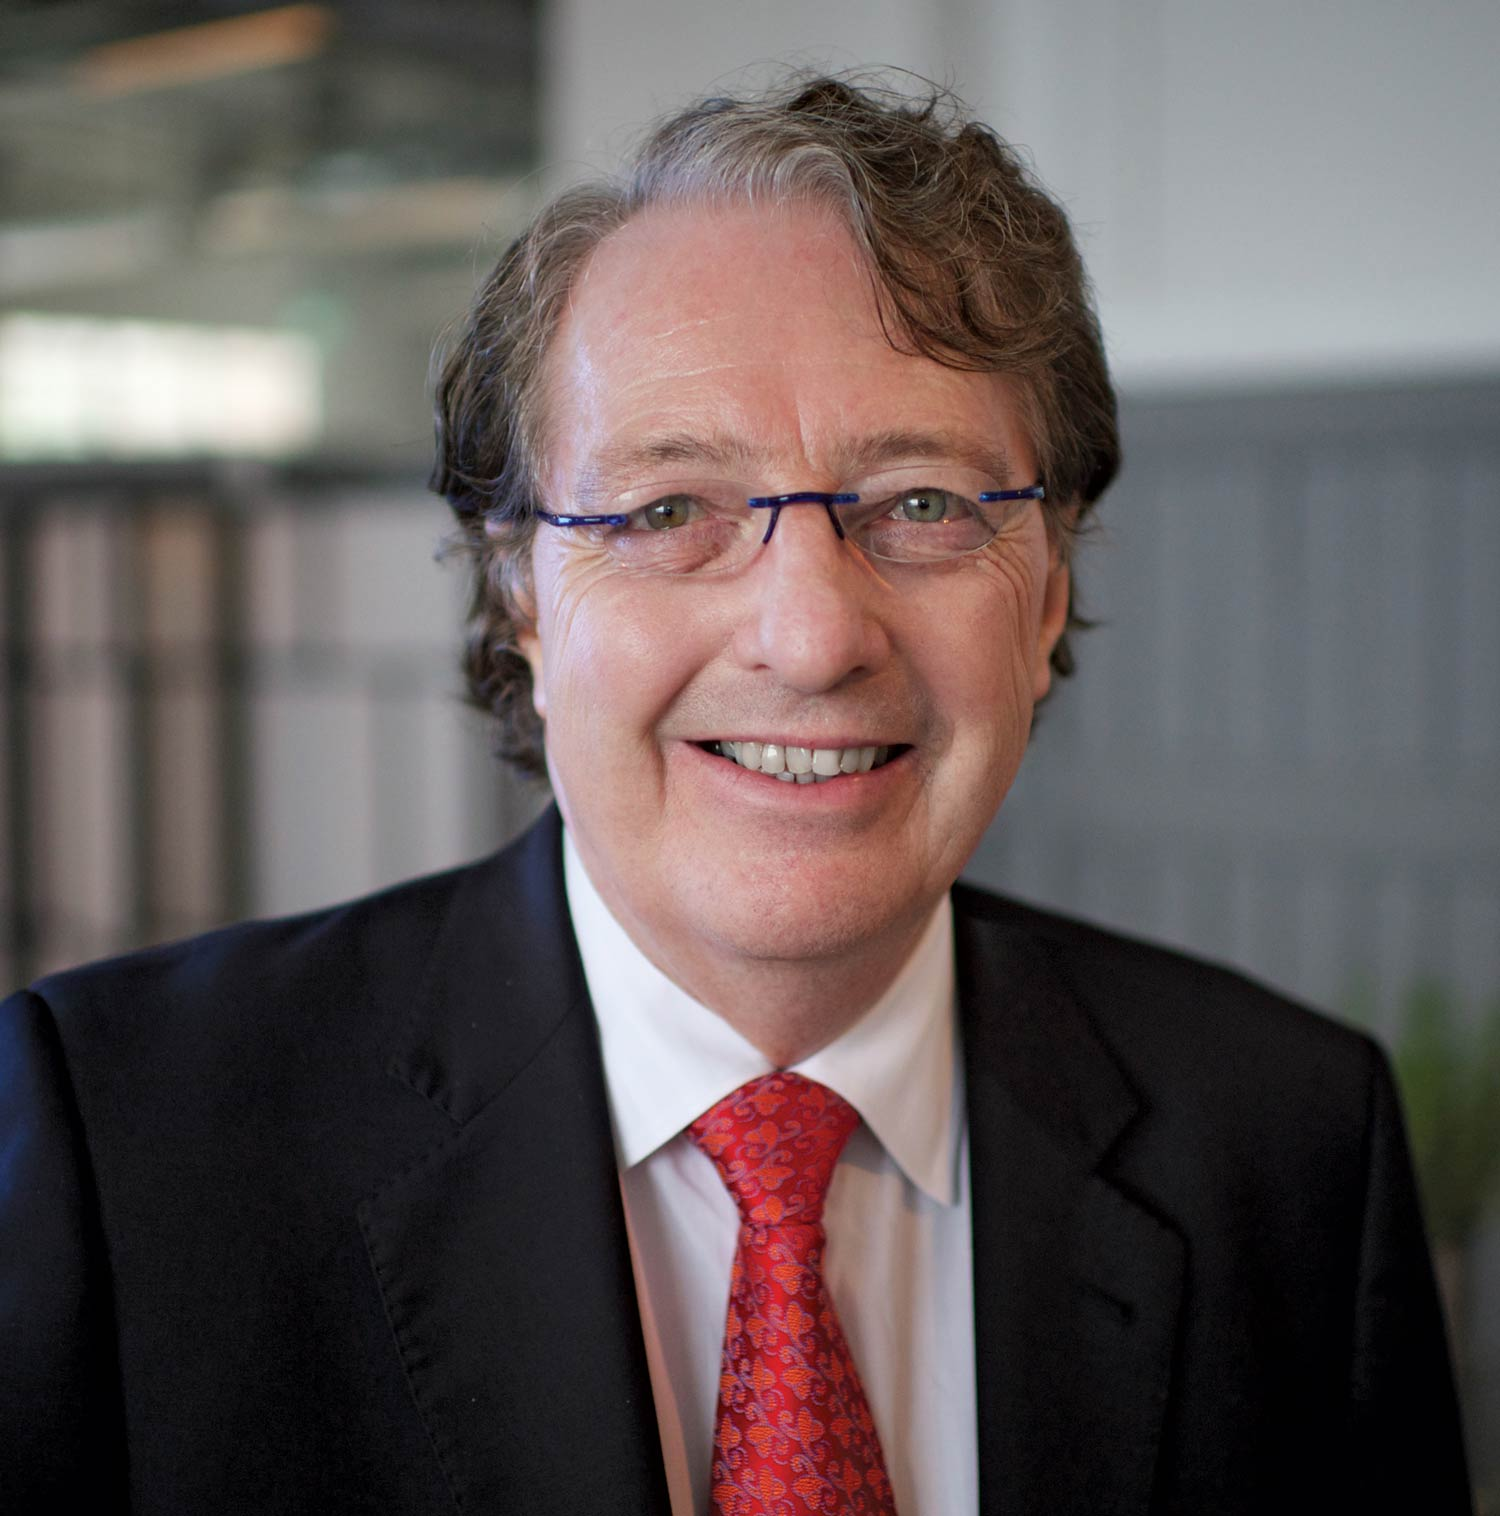 IMF Chairman and multiple myeloma expert Dr. Brian G.M. Durie professional headshot